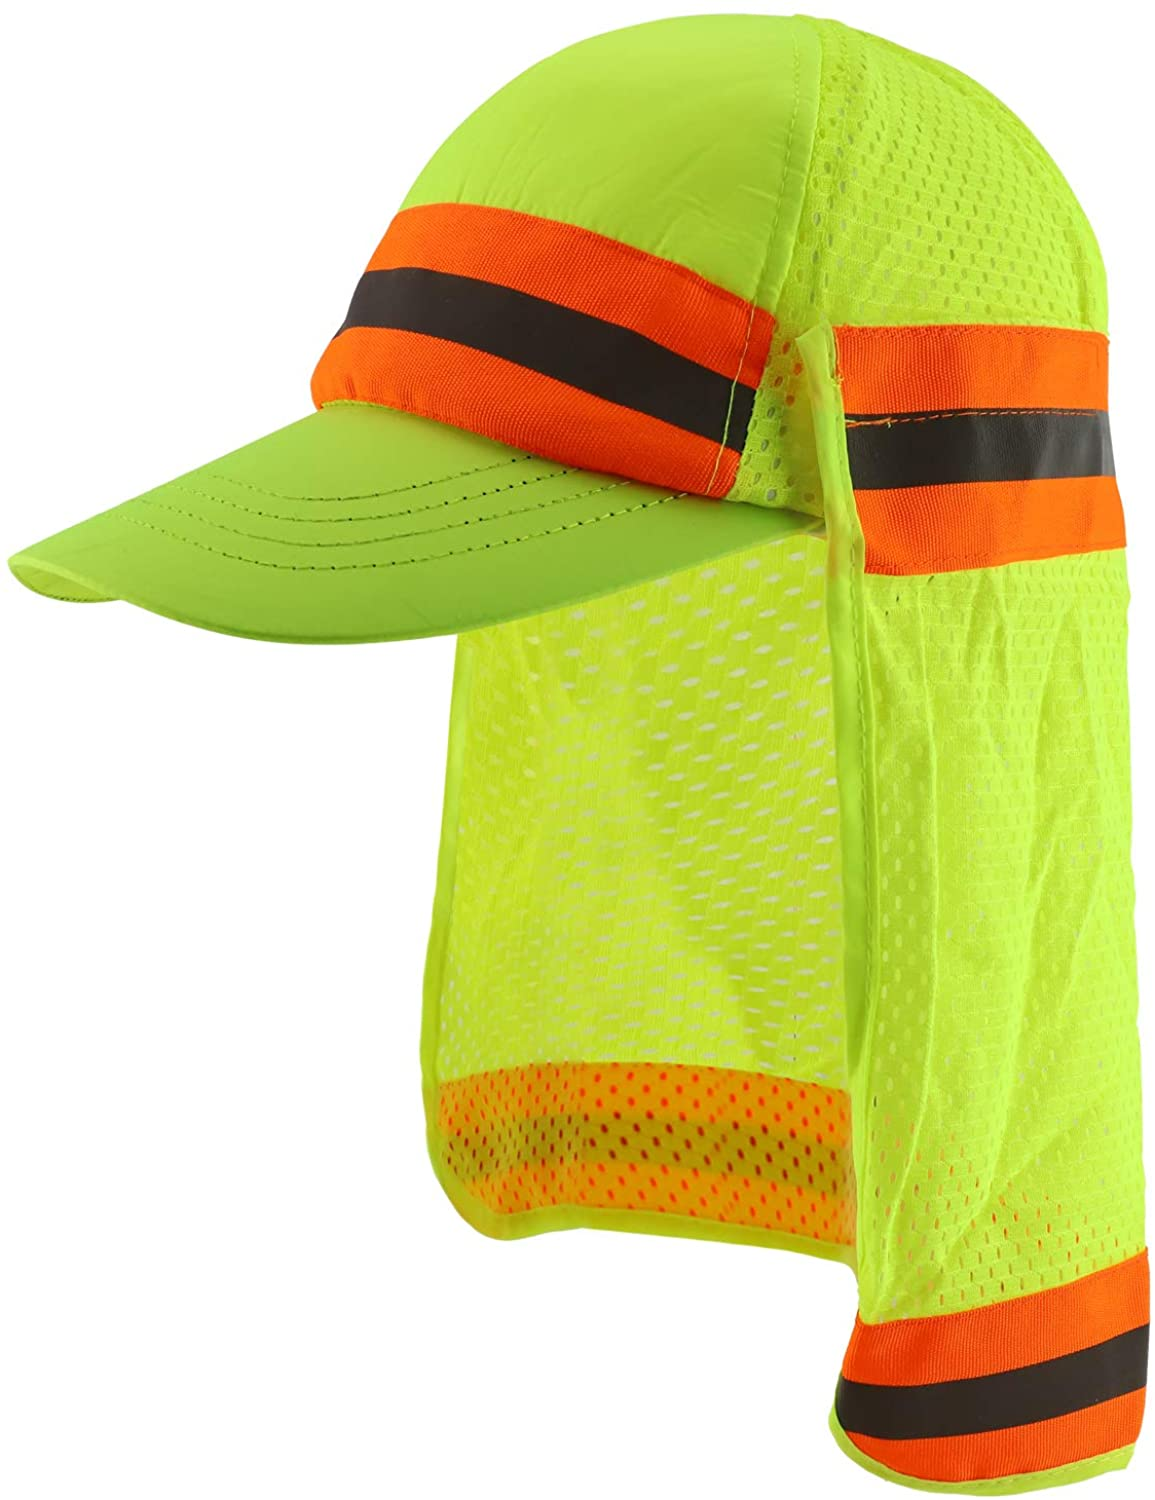 Trendy Apparel Shop High Visibility Reflective Ball Cap with Removable Mesh Flap